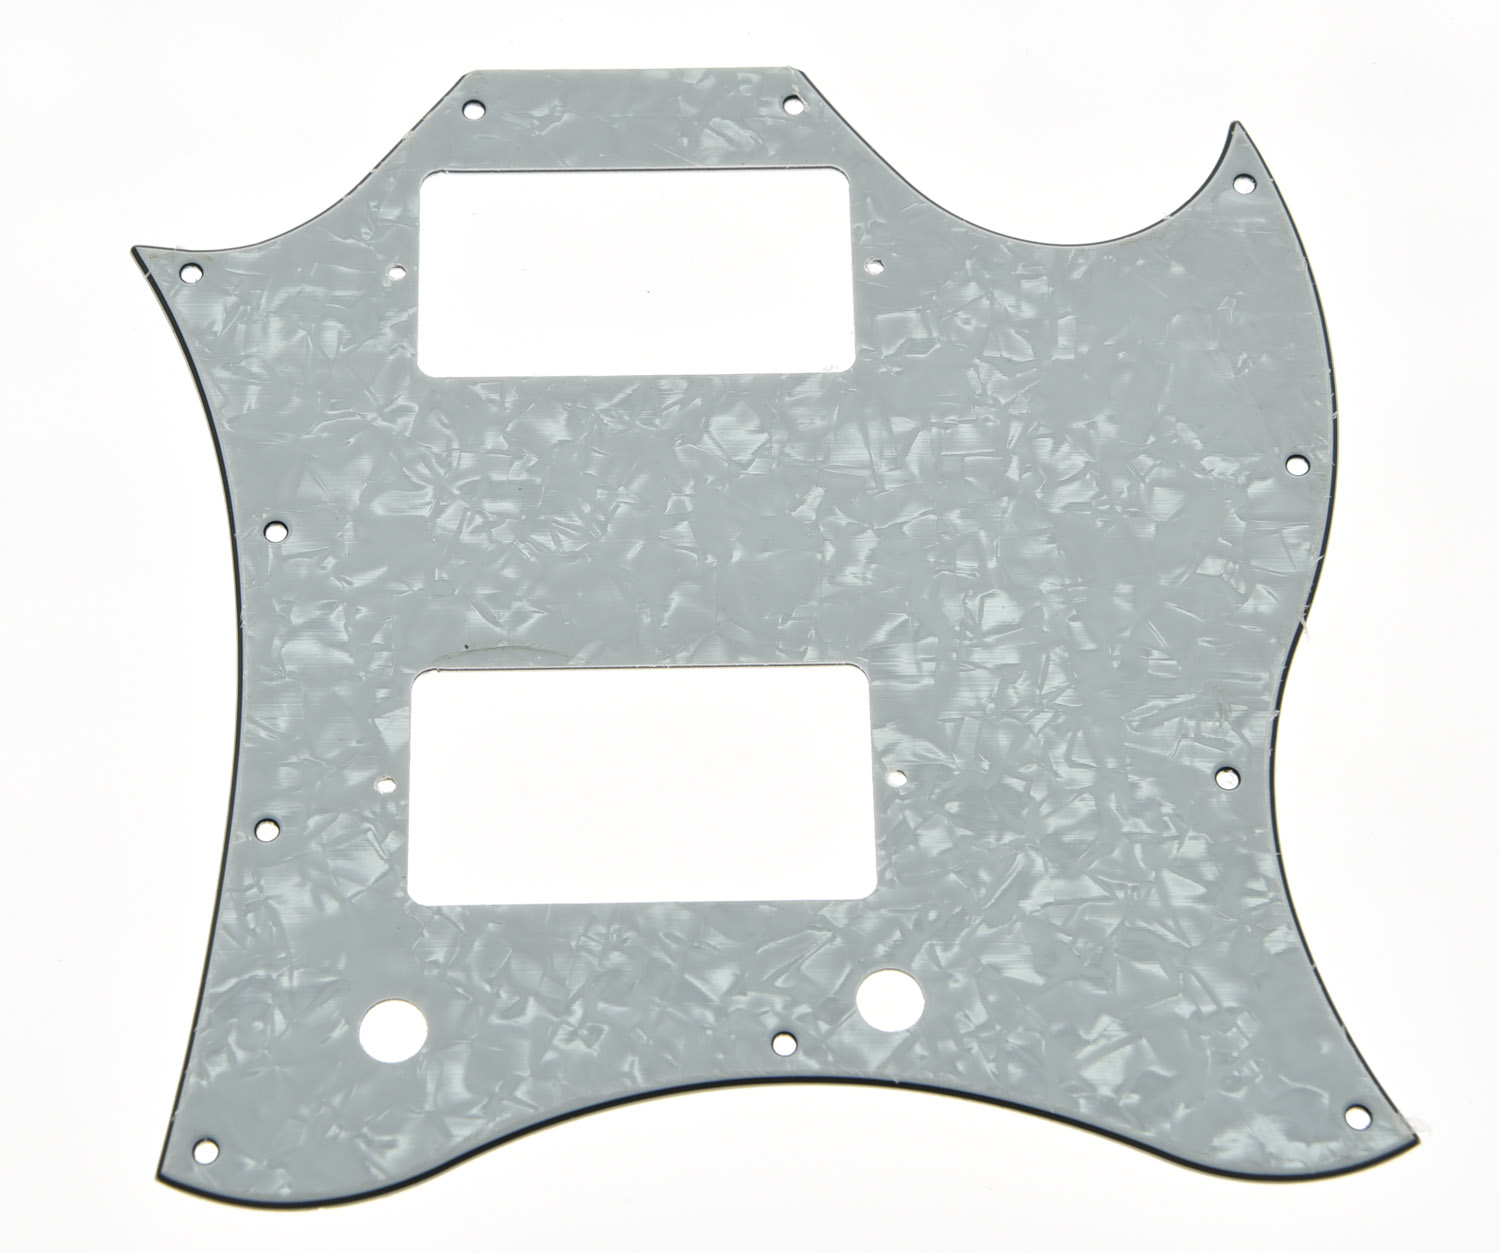 KAISH SG Standard Full Face Guitar Pickguard Scratch Plate White Pearl 3 Ply w/ Screws kaish various colors st style hss guitar pickguard scratch plate trem cover screws